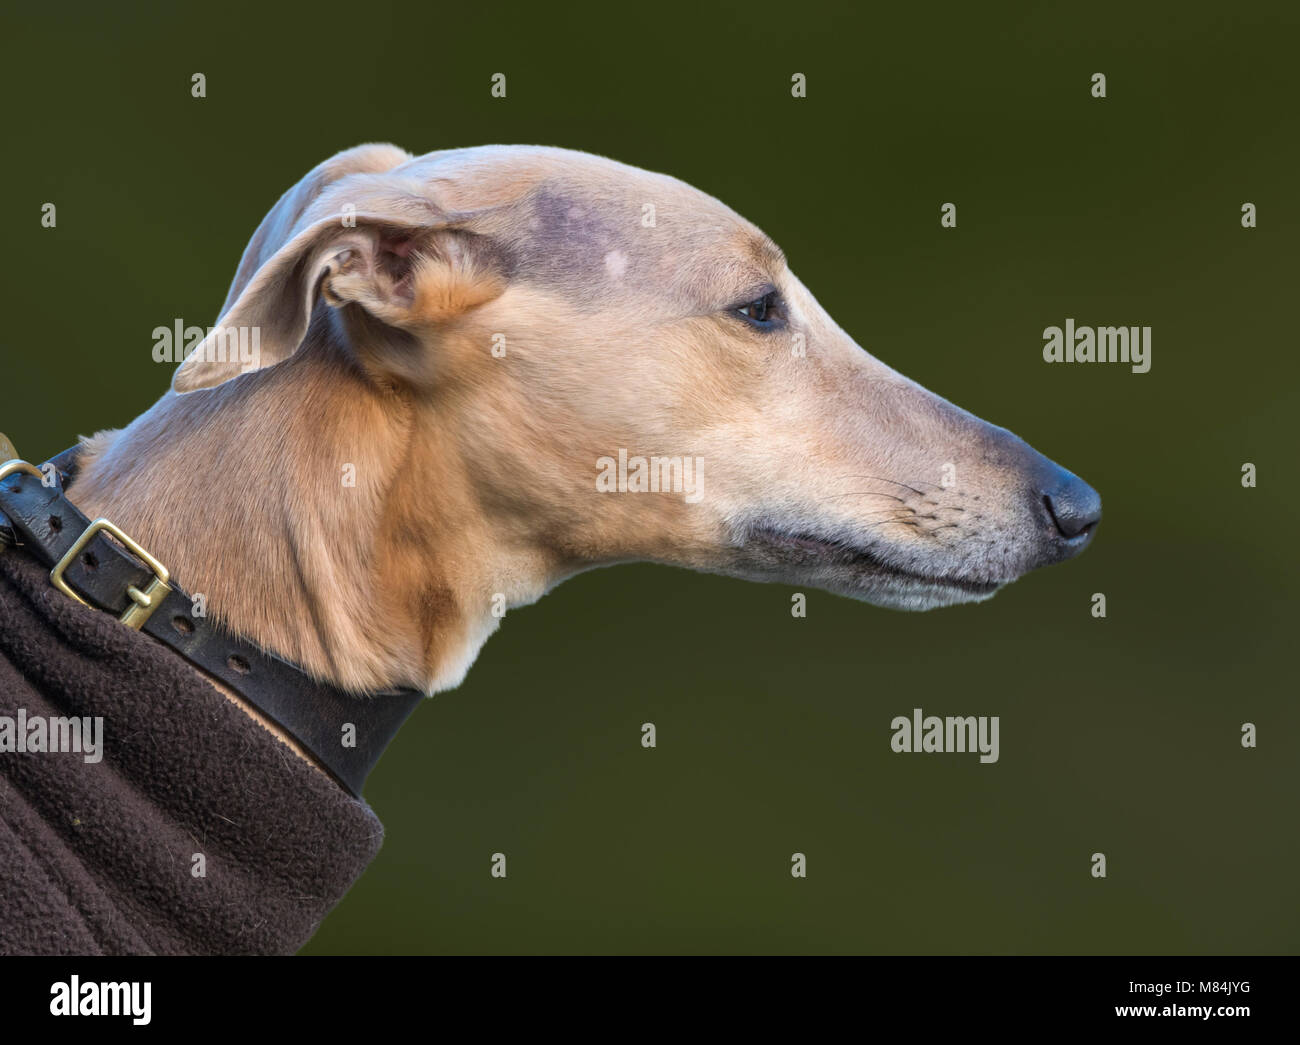 Closeup side view of the head of a Whippet dog. - Stock Image